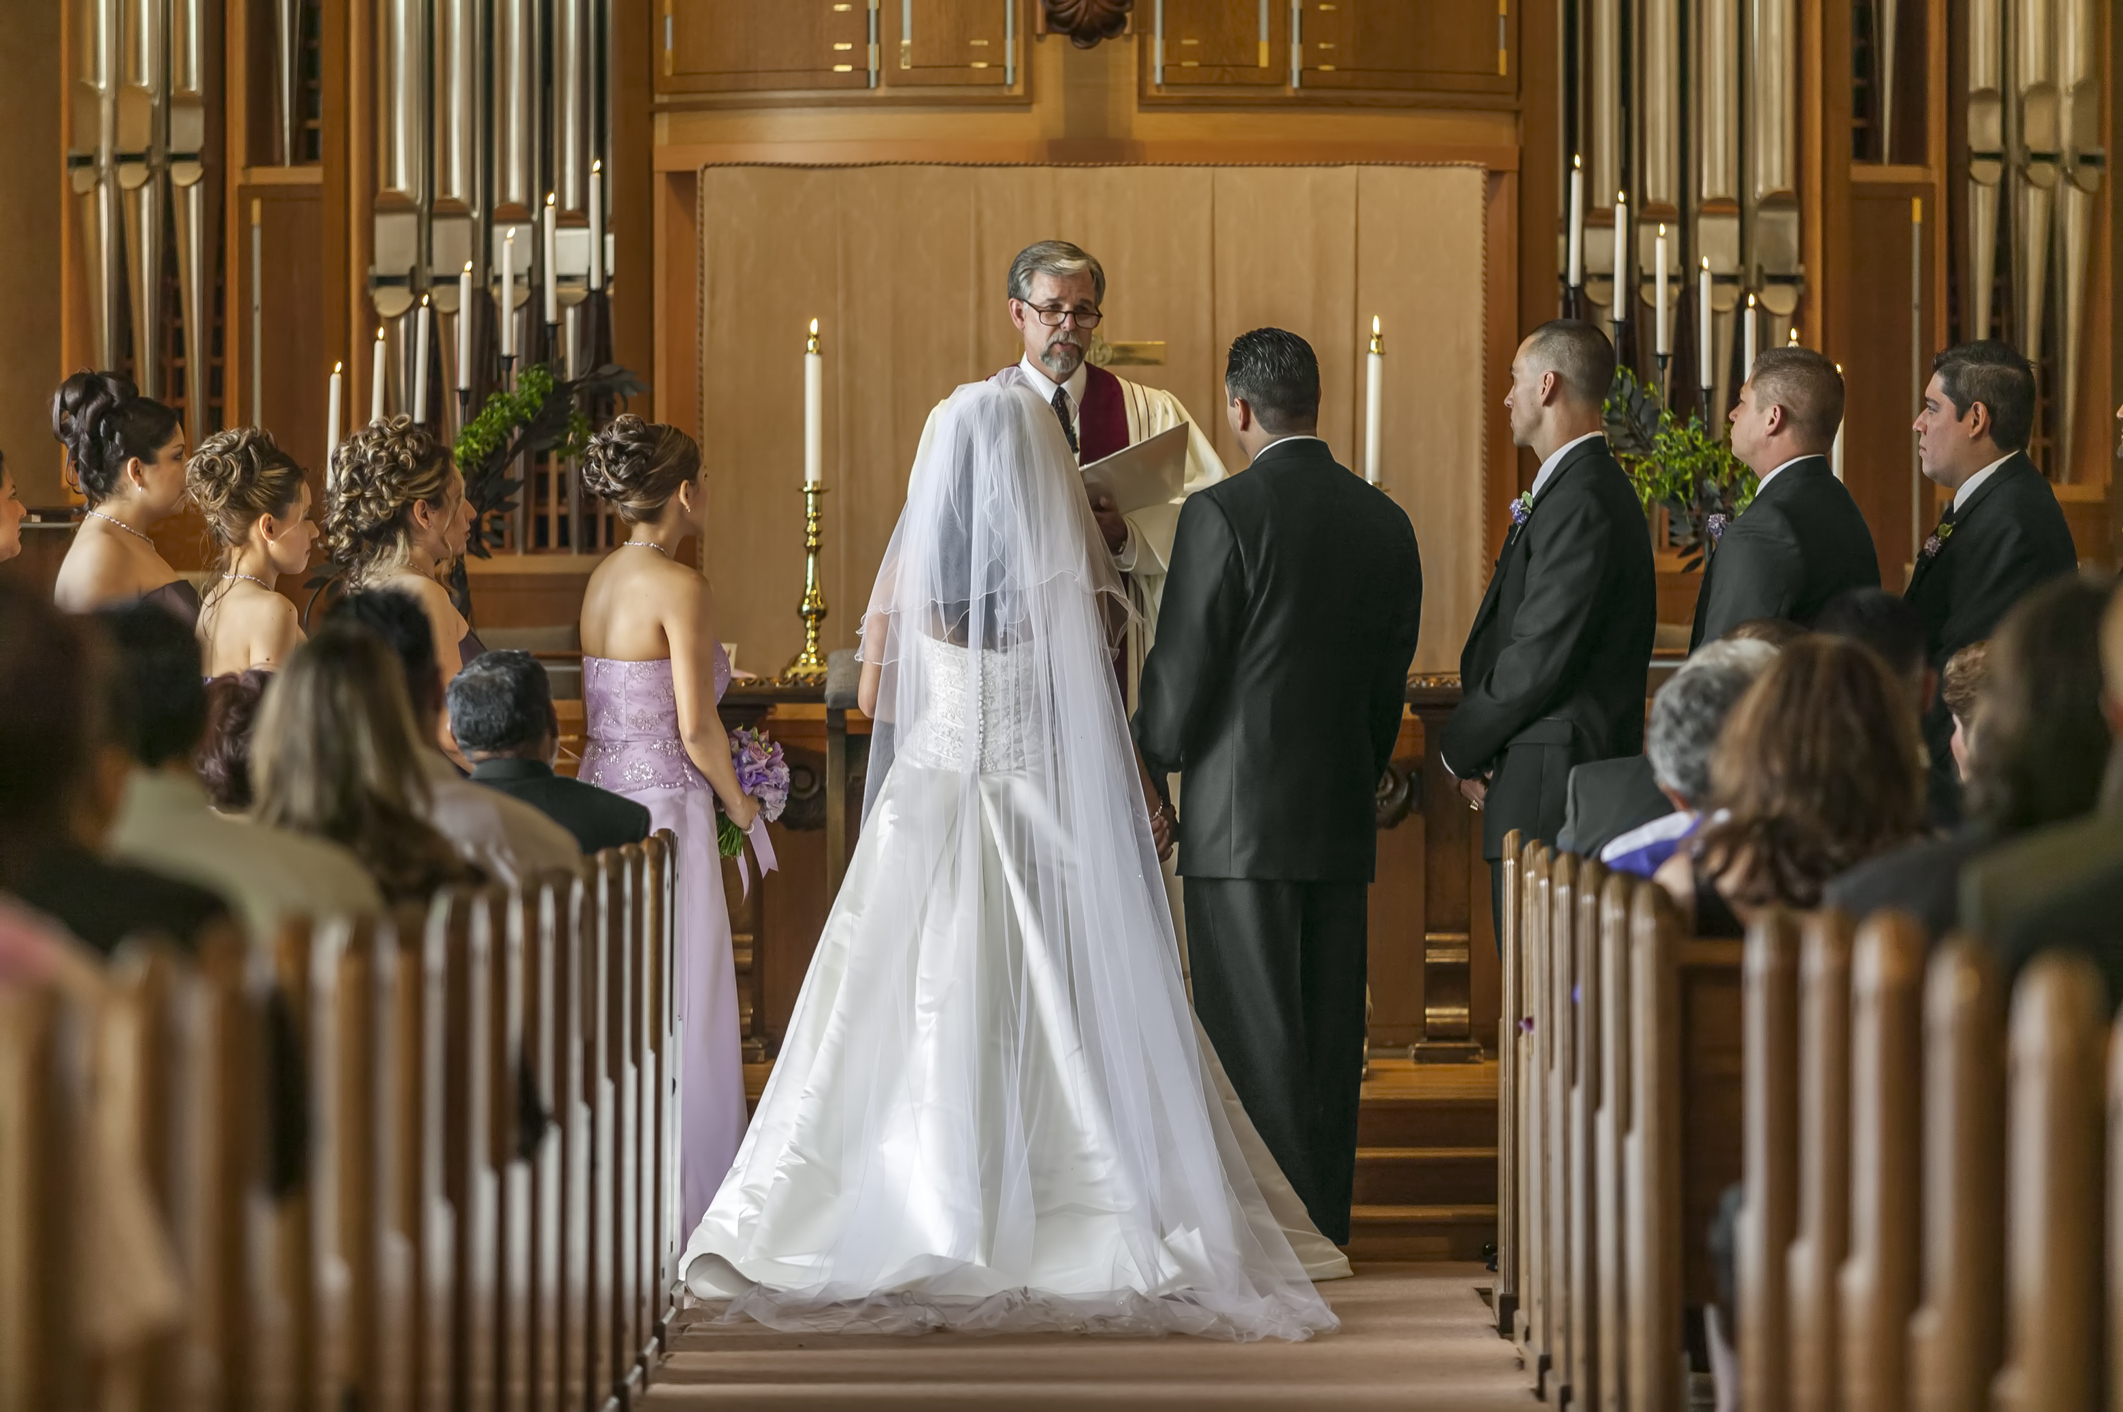 Religious institutions promote sexism through marriage and abortion ideology – changing God's gender won't fix that